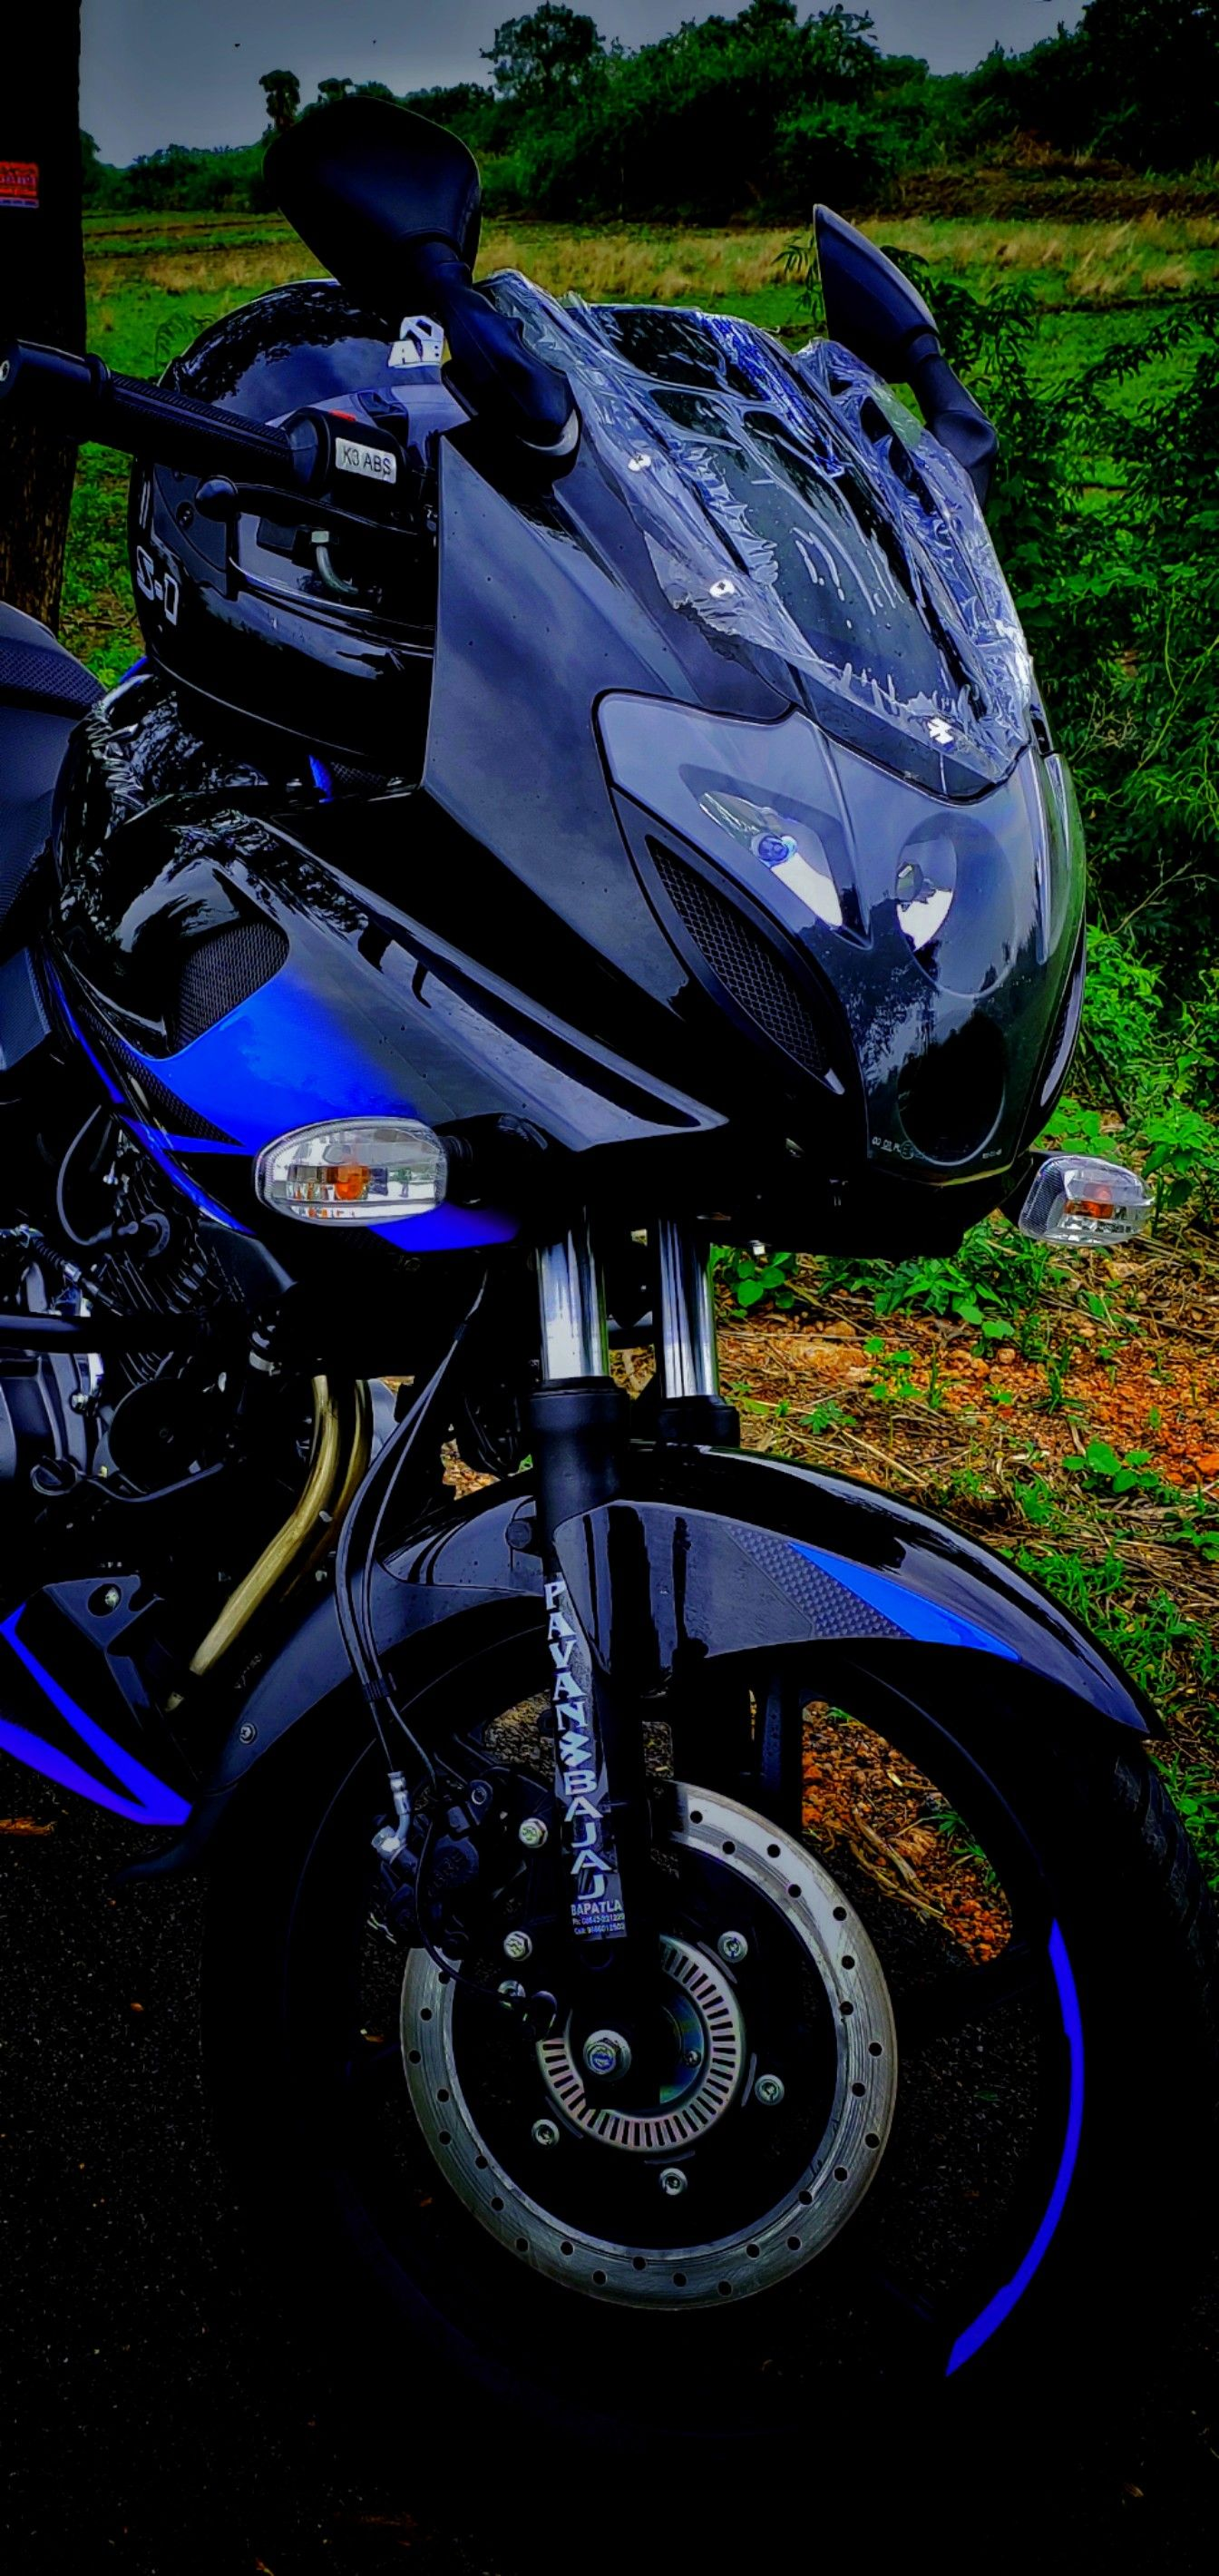 Pulsar 220f My Darling Black Background Images Studio Background Images Light Background Images